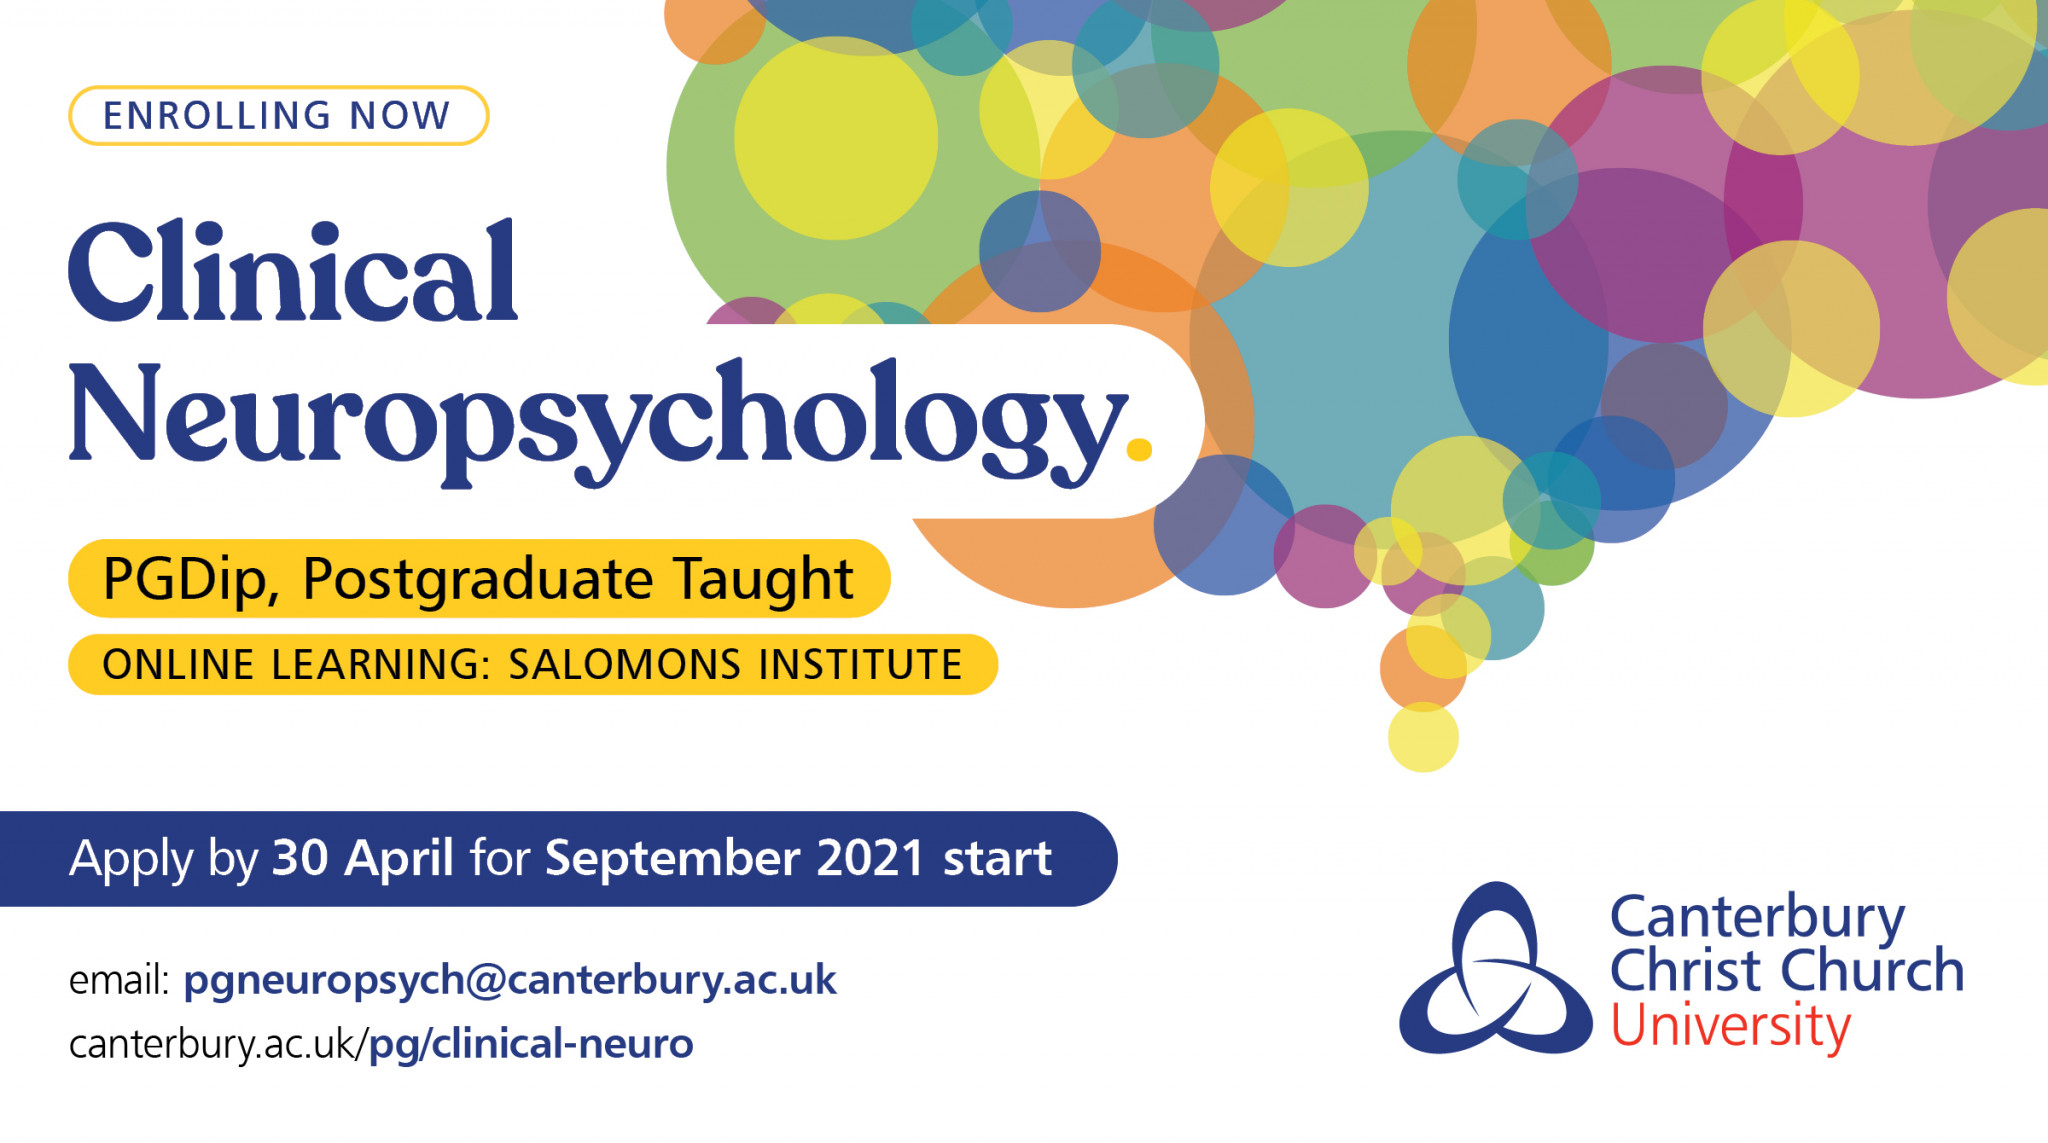 NEW! PGDip in Clinical Neuropsychology at Salomons